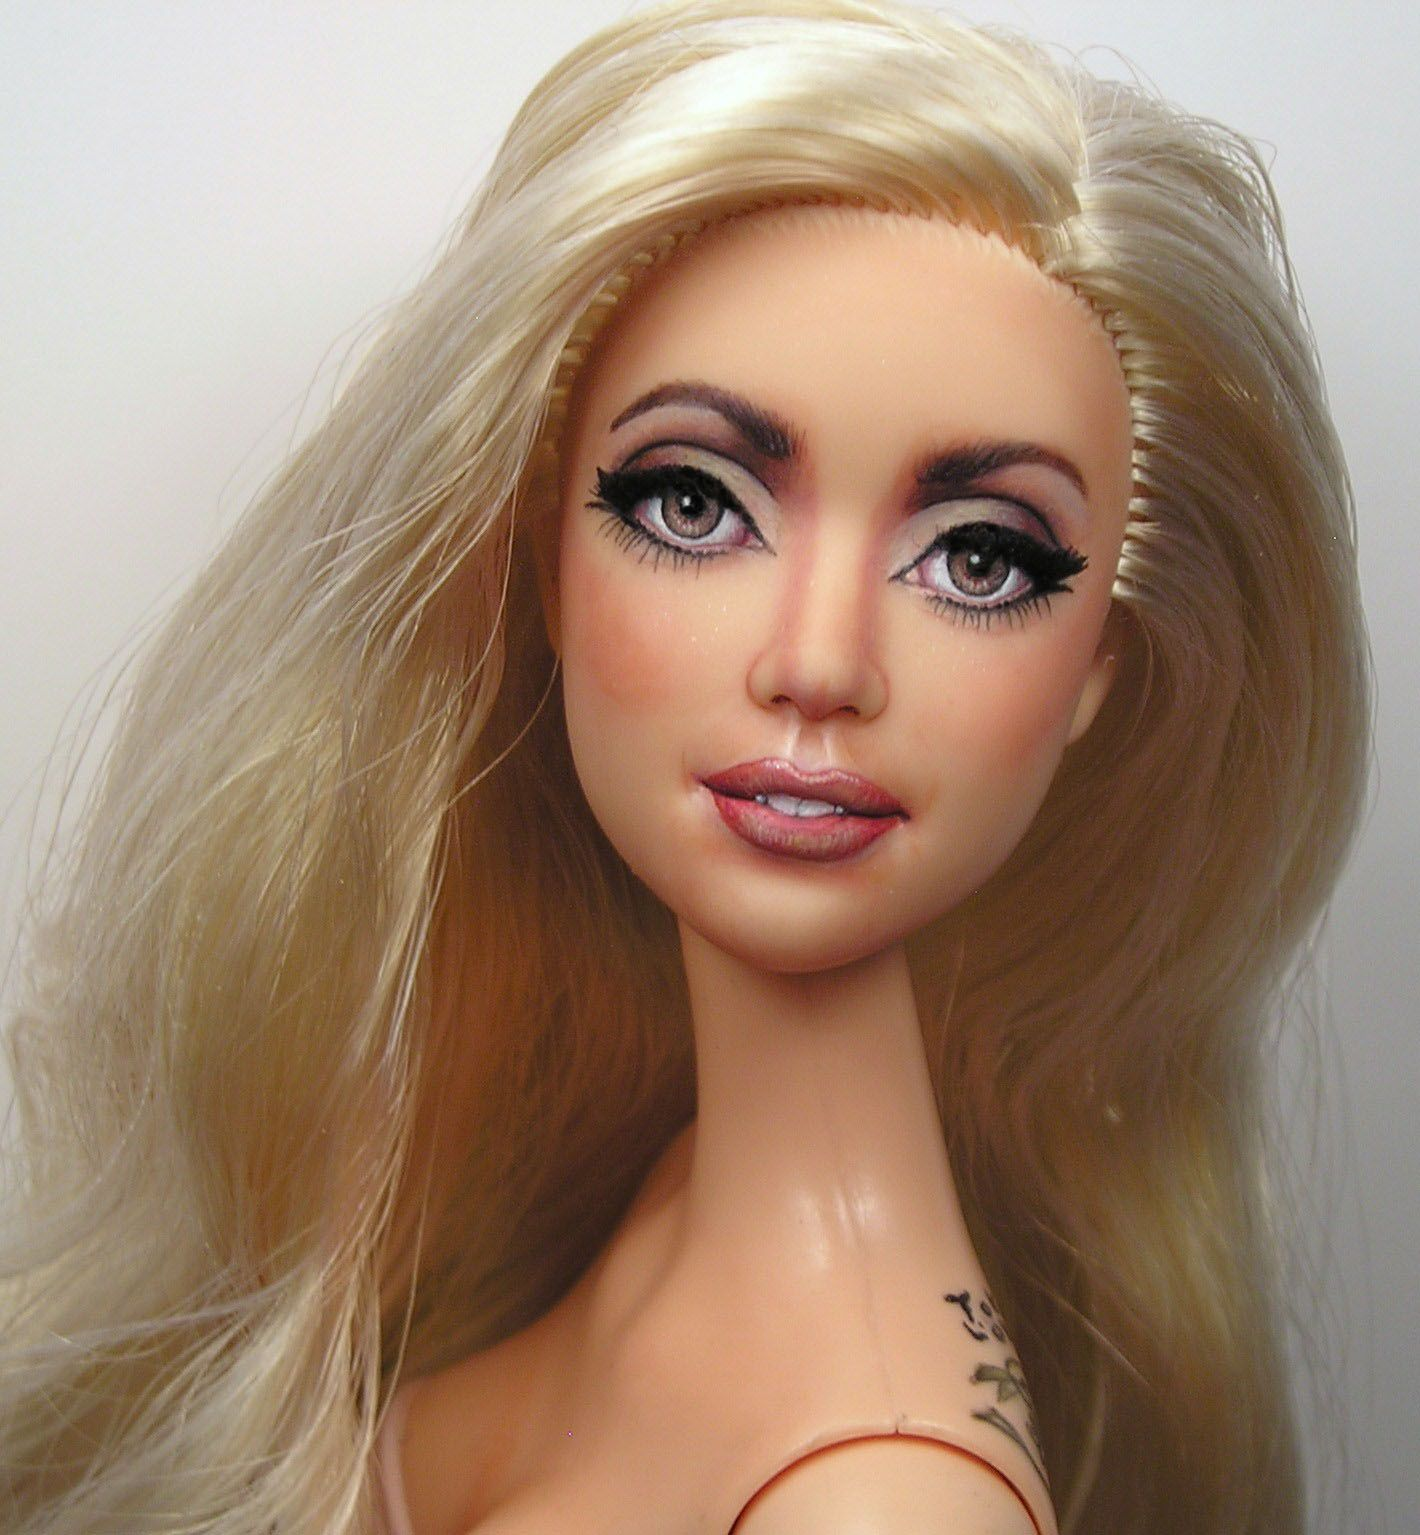 Lady Gaga OOAK Stardoll Barbie Celebrity Art Doll Repaint by Pamela